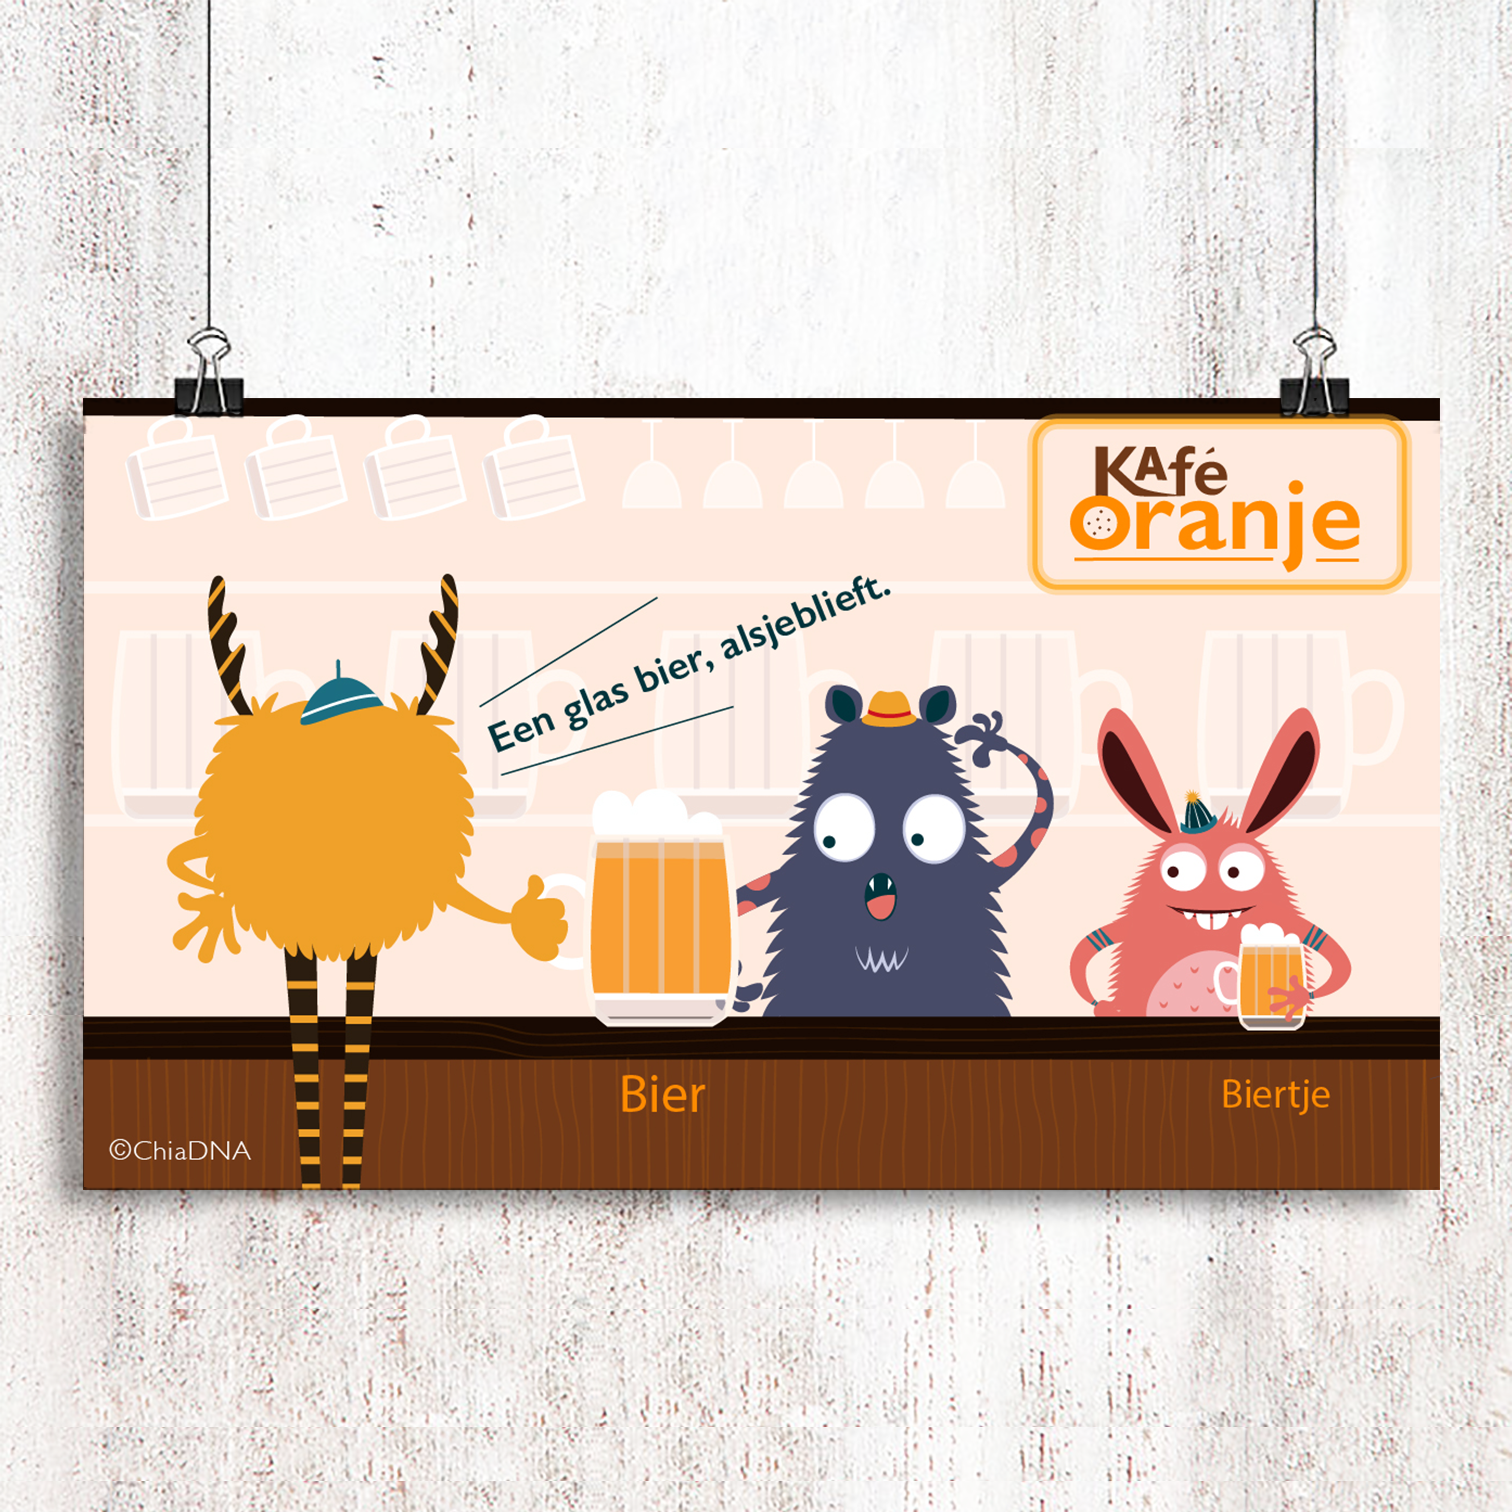 Ya! It's Friday! – Café Oranje